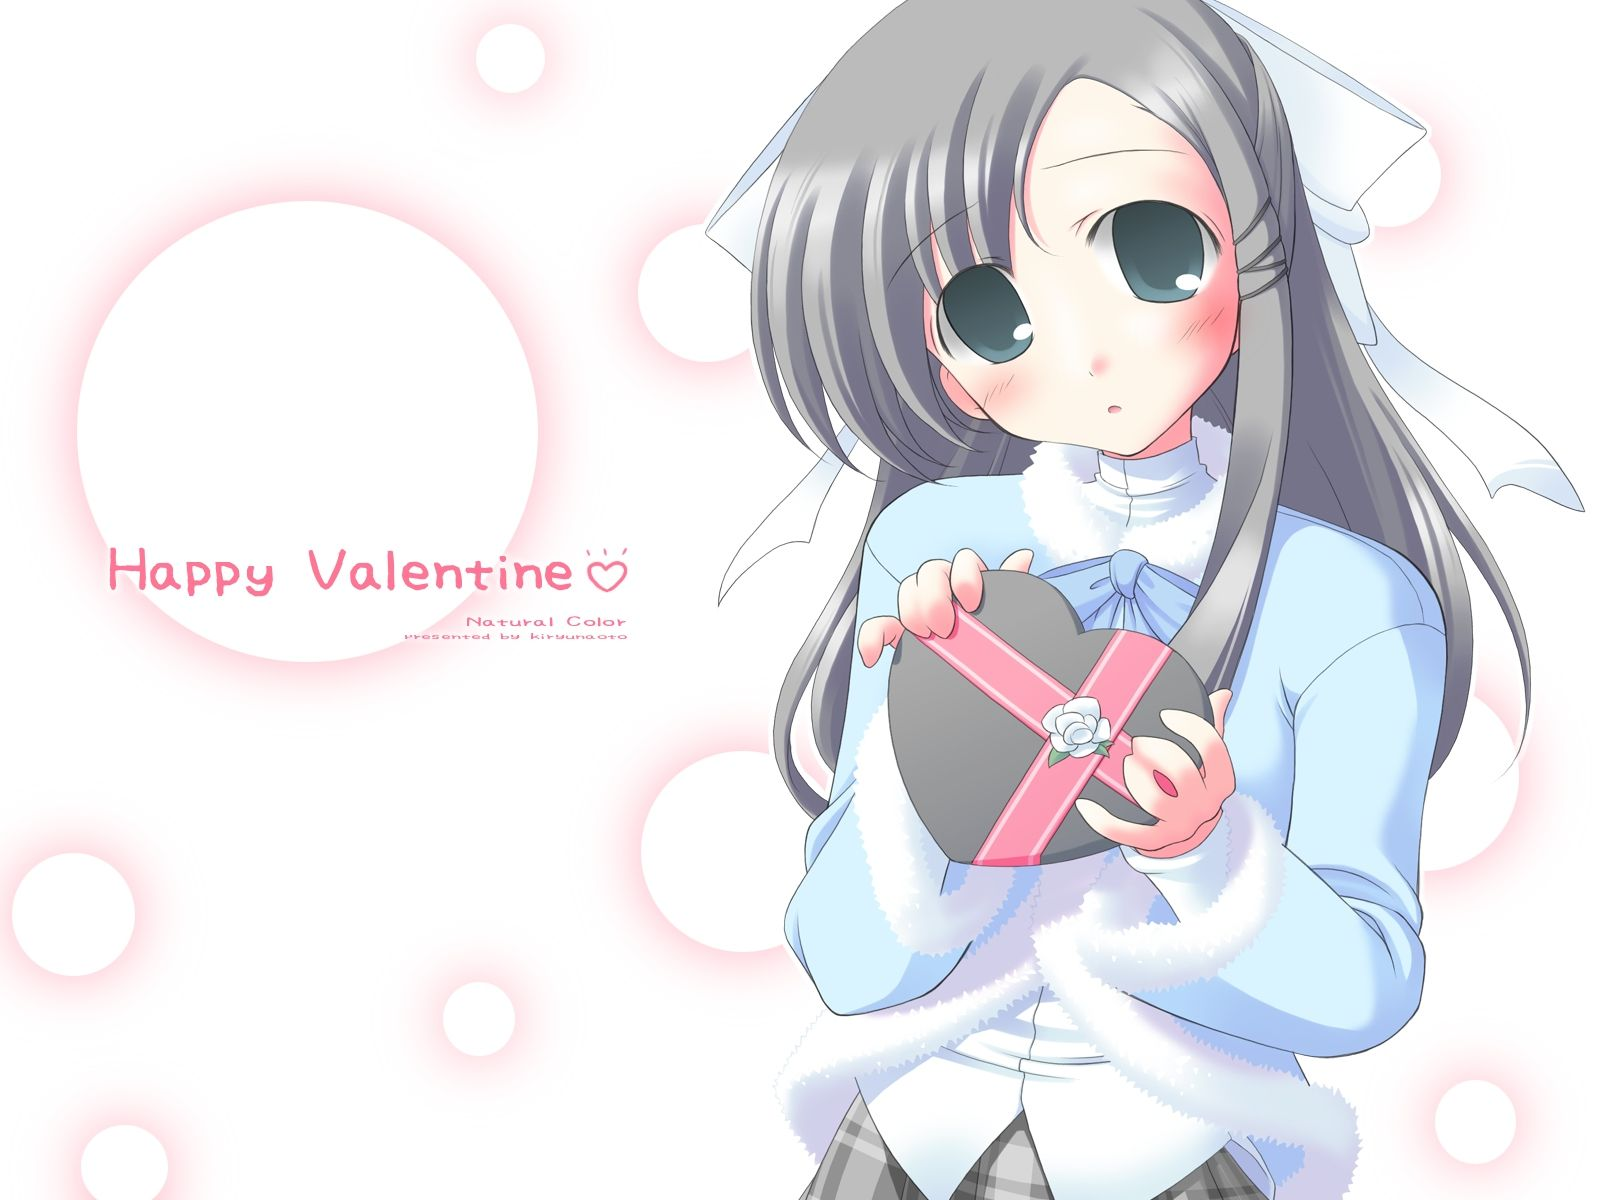 Cute happy valentines day anime girl wallpaper 2964 - Happy valentines day anime ...